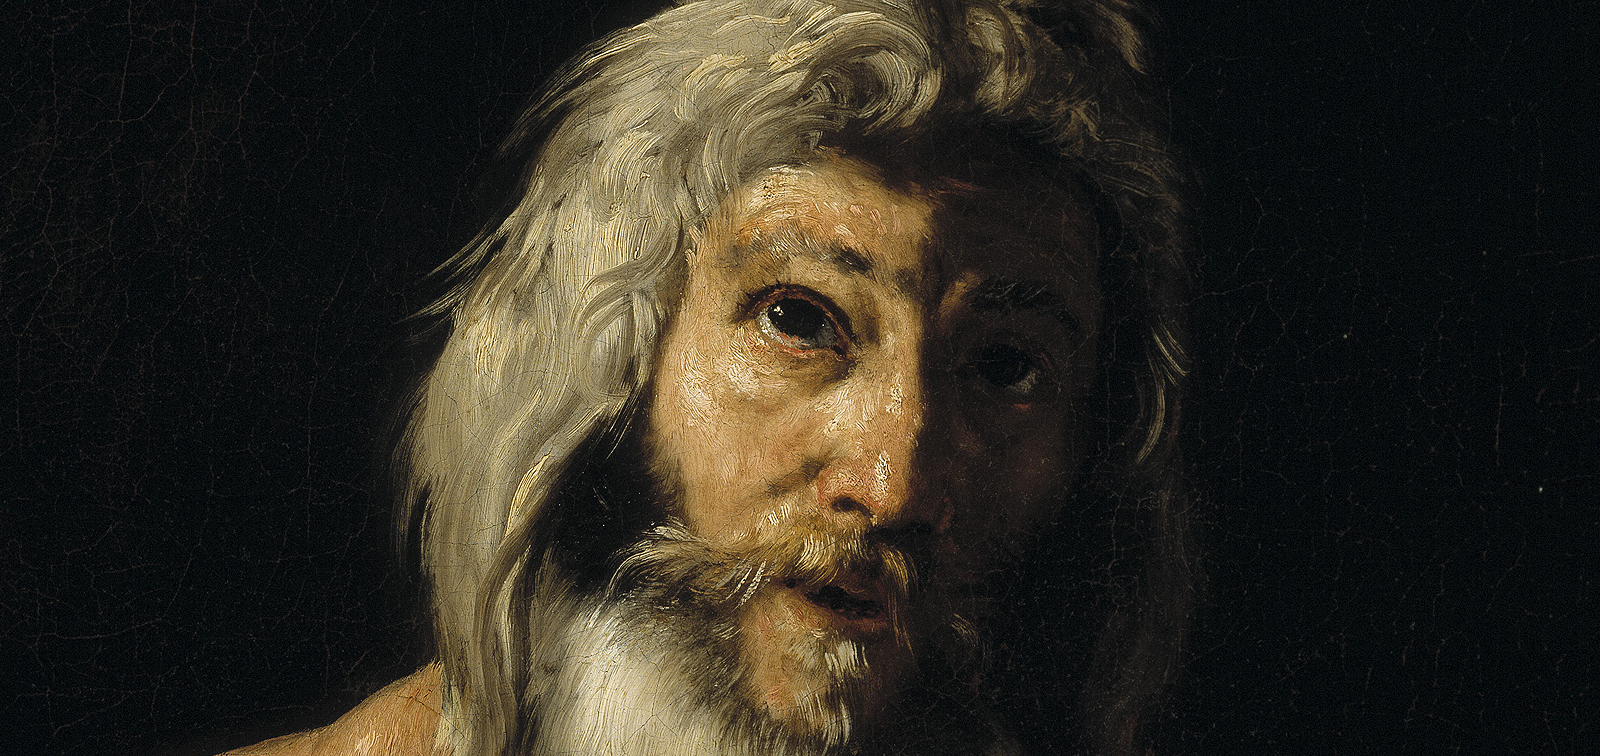 Portrait of Spain. Masterpieces from the Prado